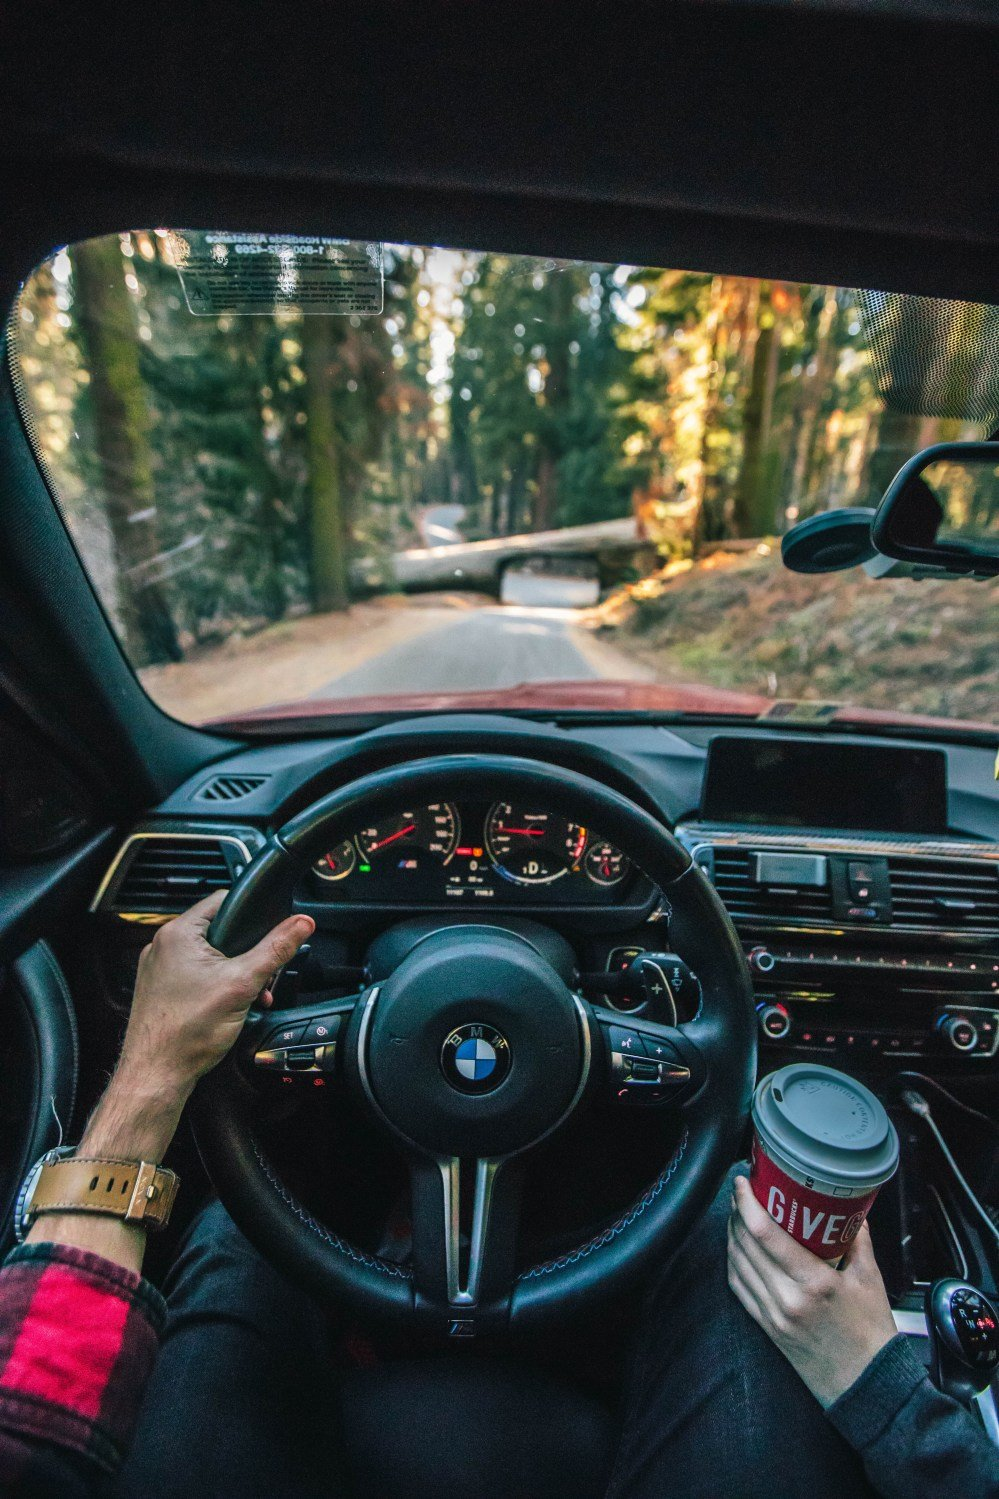 Latest Bmw Pictures Hq Download Free Images On Unsplash Free Download